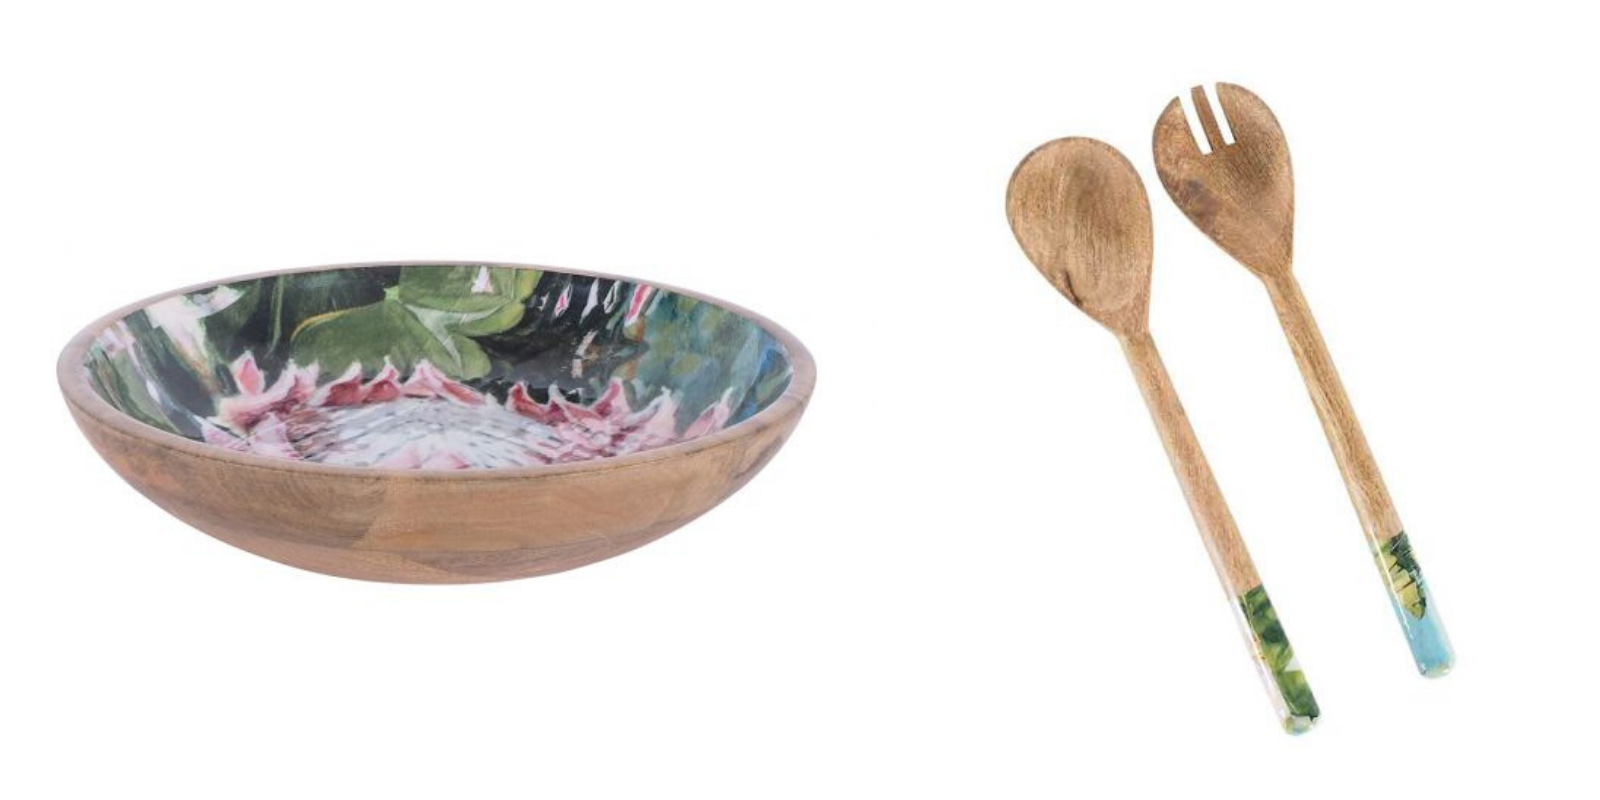 Early Settler salad bowl and servers